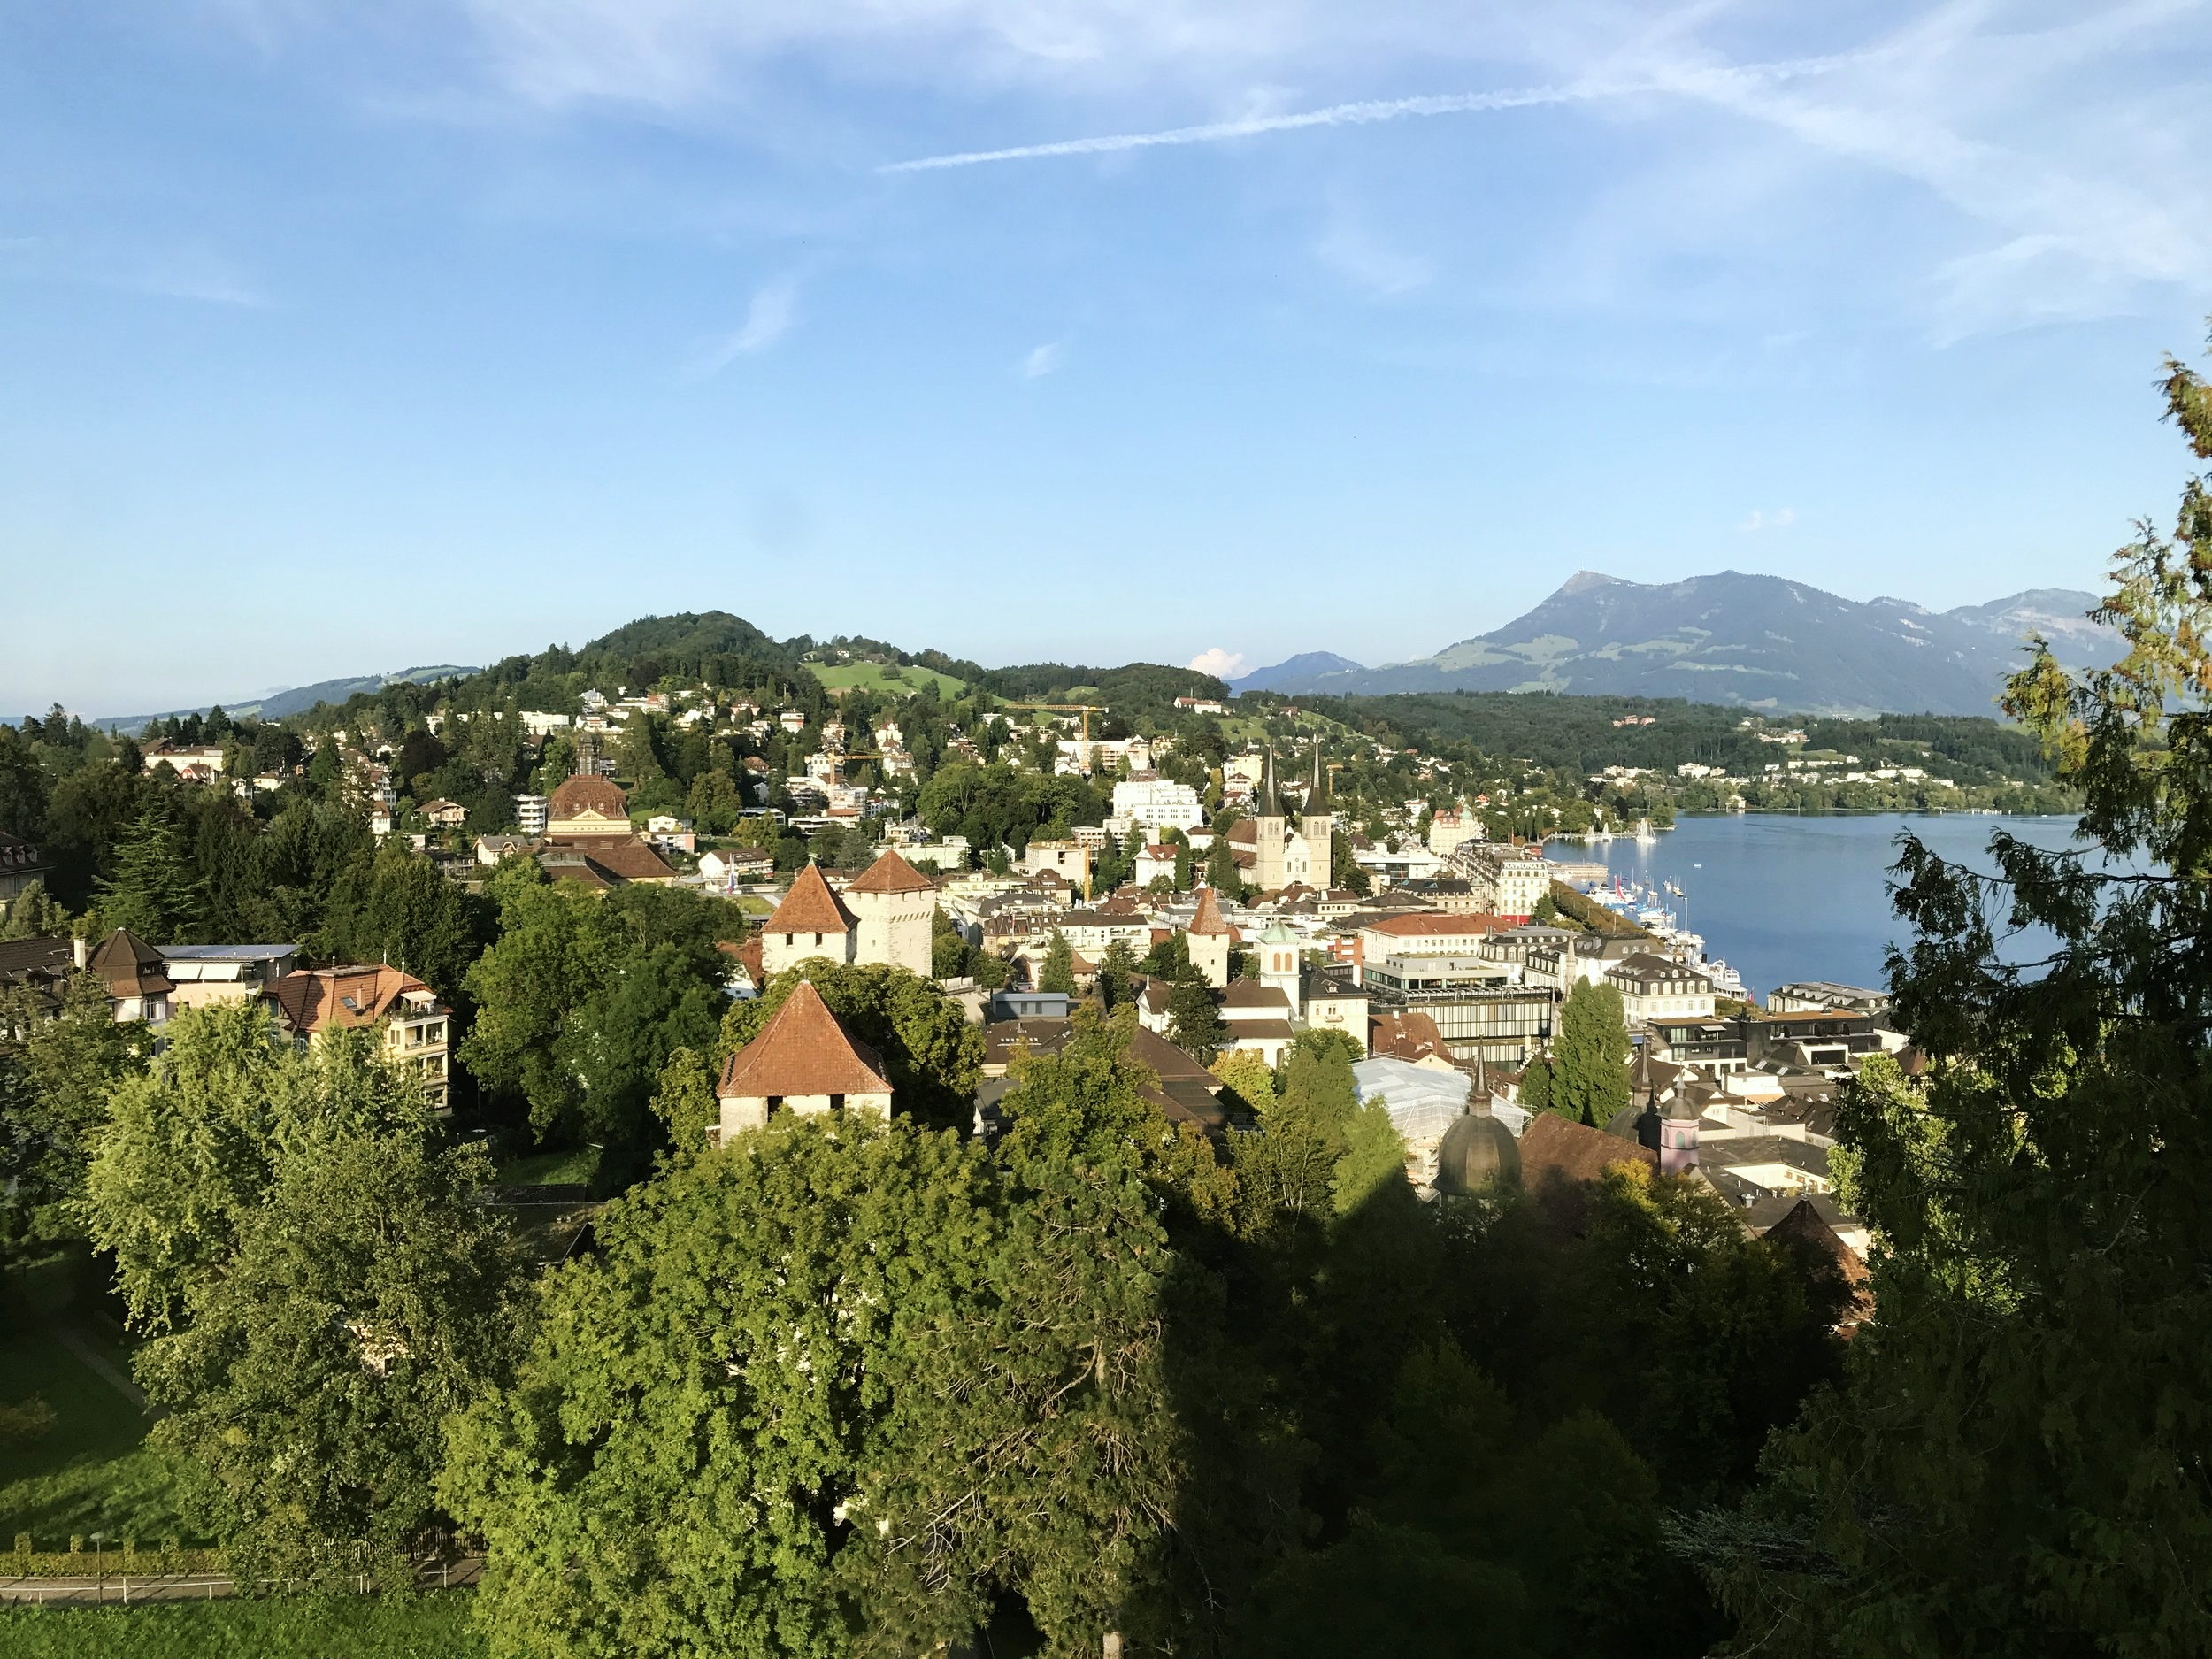 A view from Luzern, Switzerland